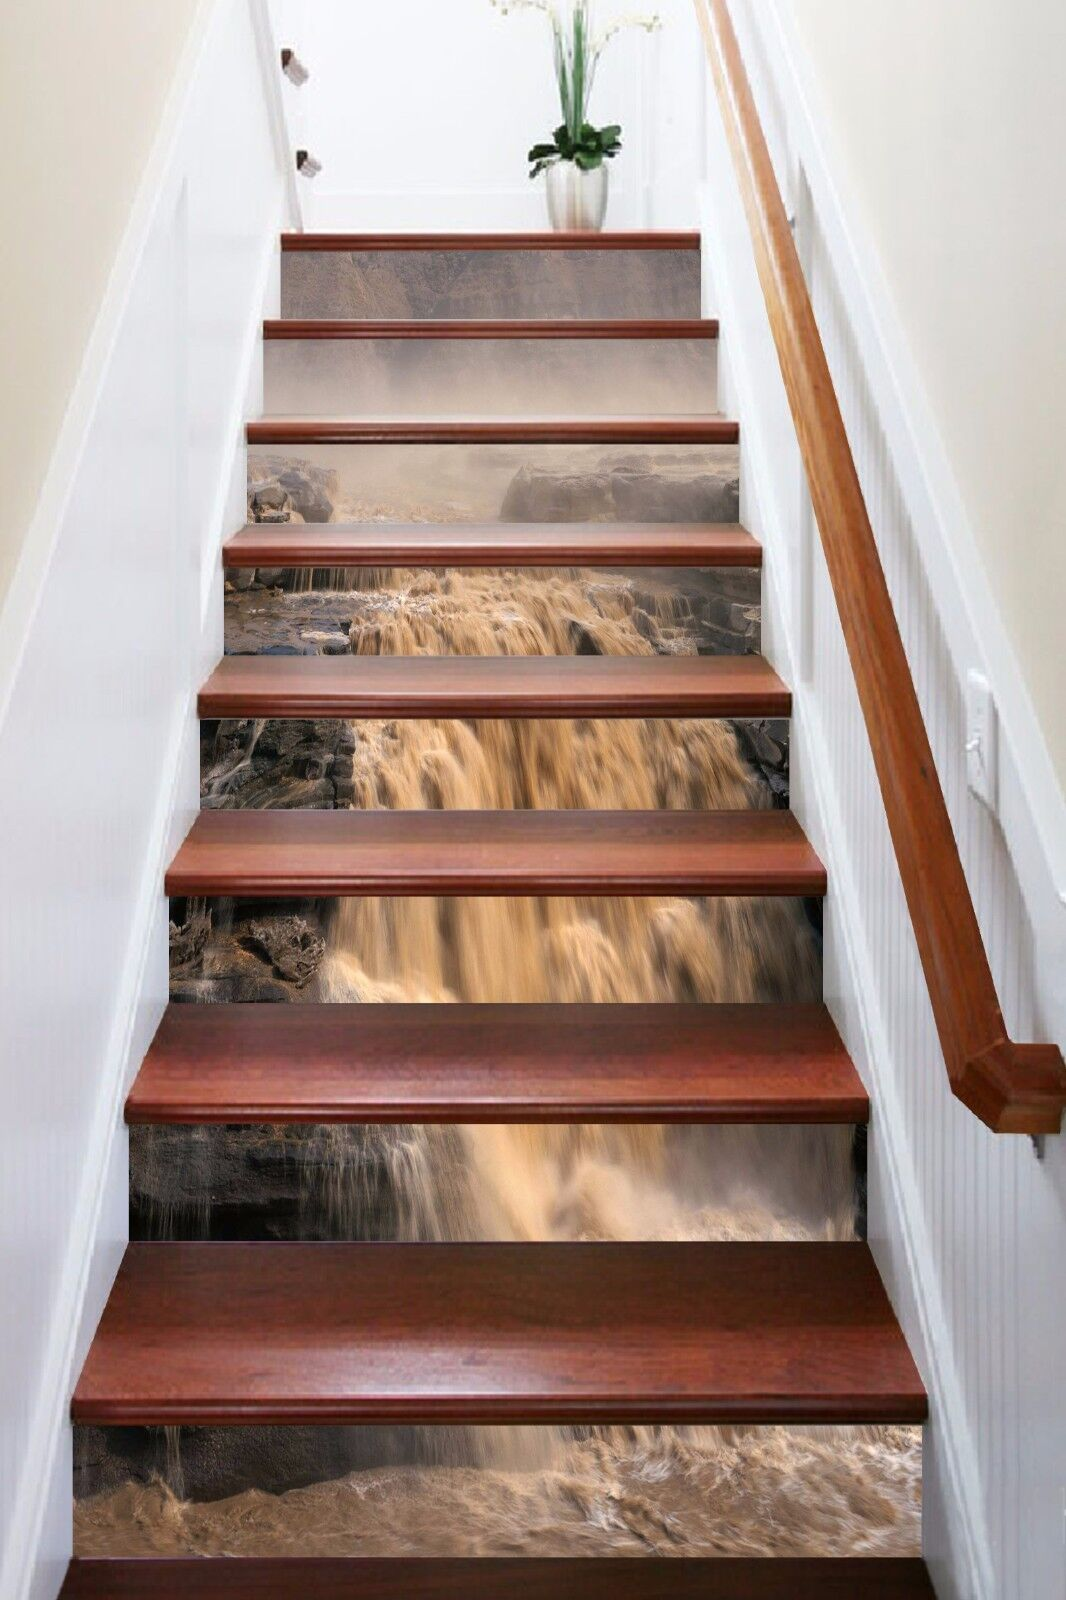 3D He Huang 5078 Stair Risers Decoration Photo Mural Vinyl Decal Wallpaper AU